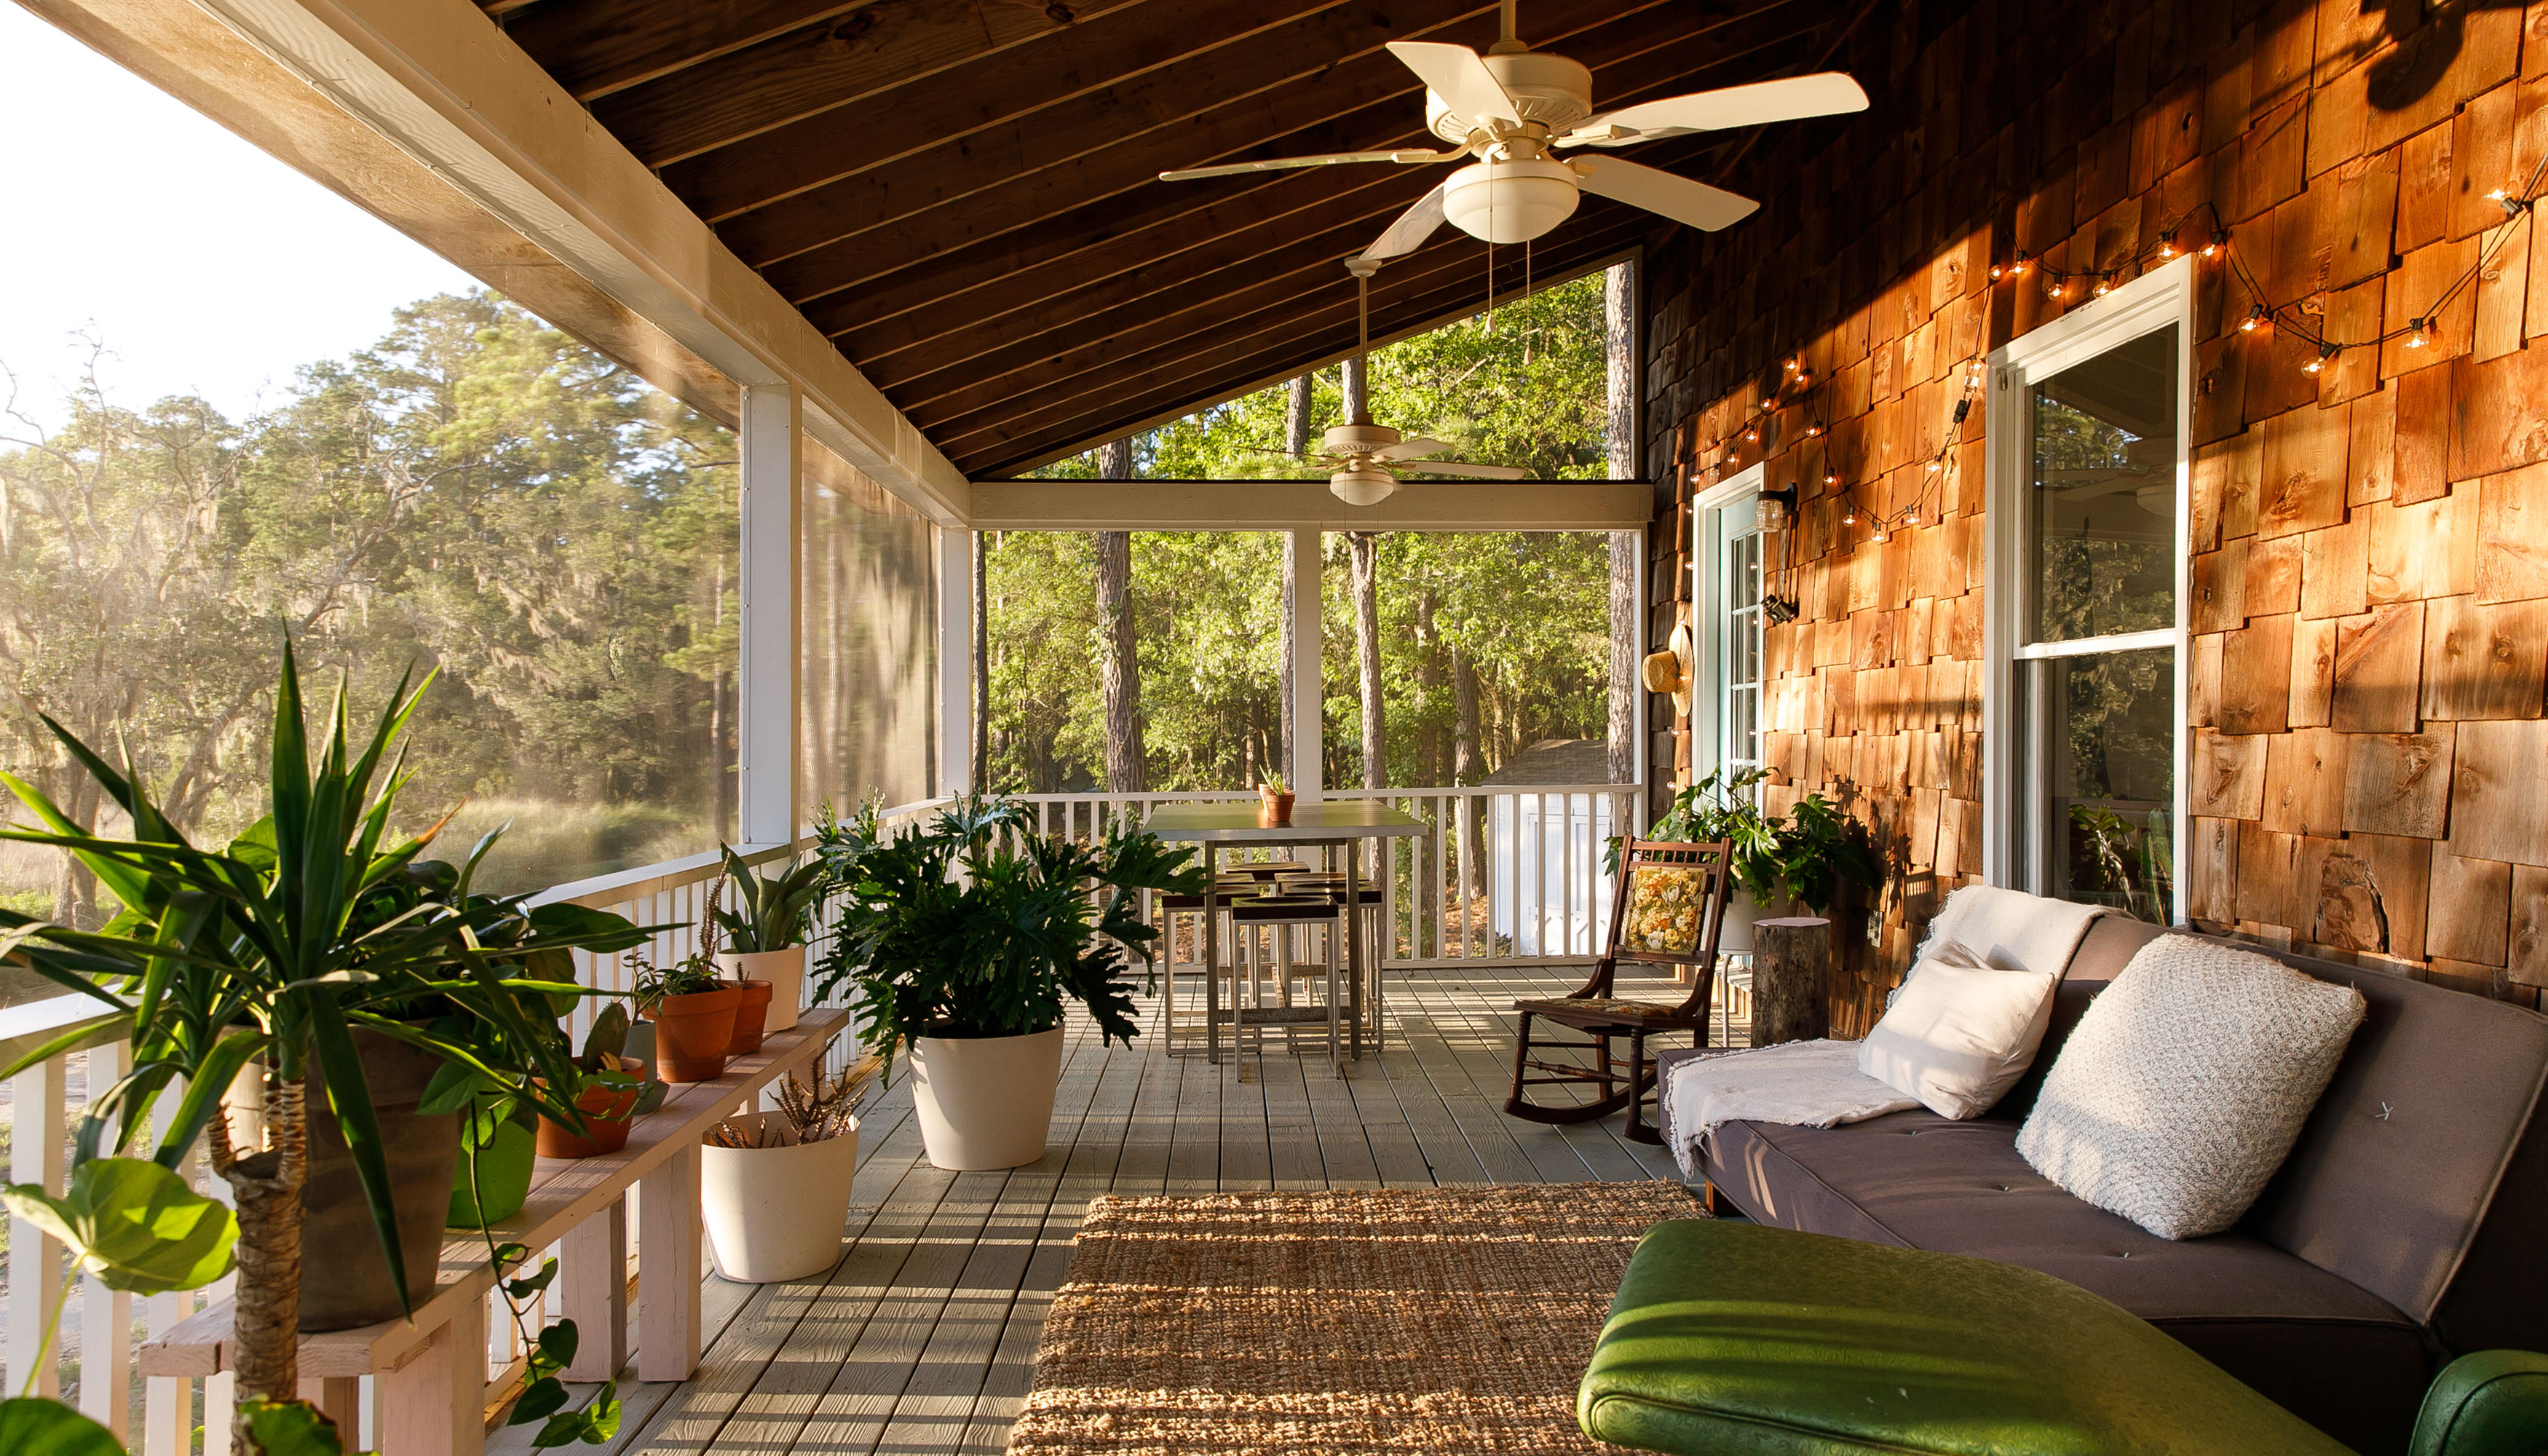 Embracing indoor-outdoor living in the South Carolina marshlands